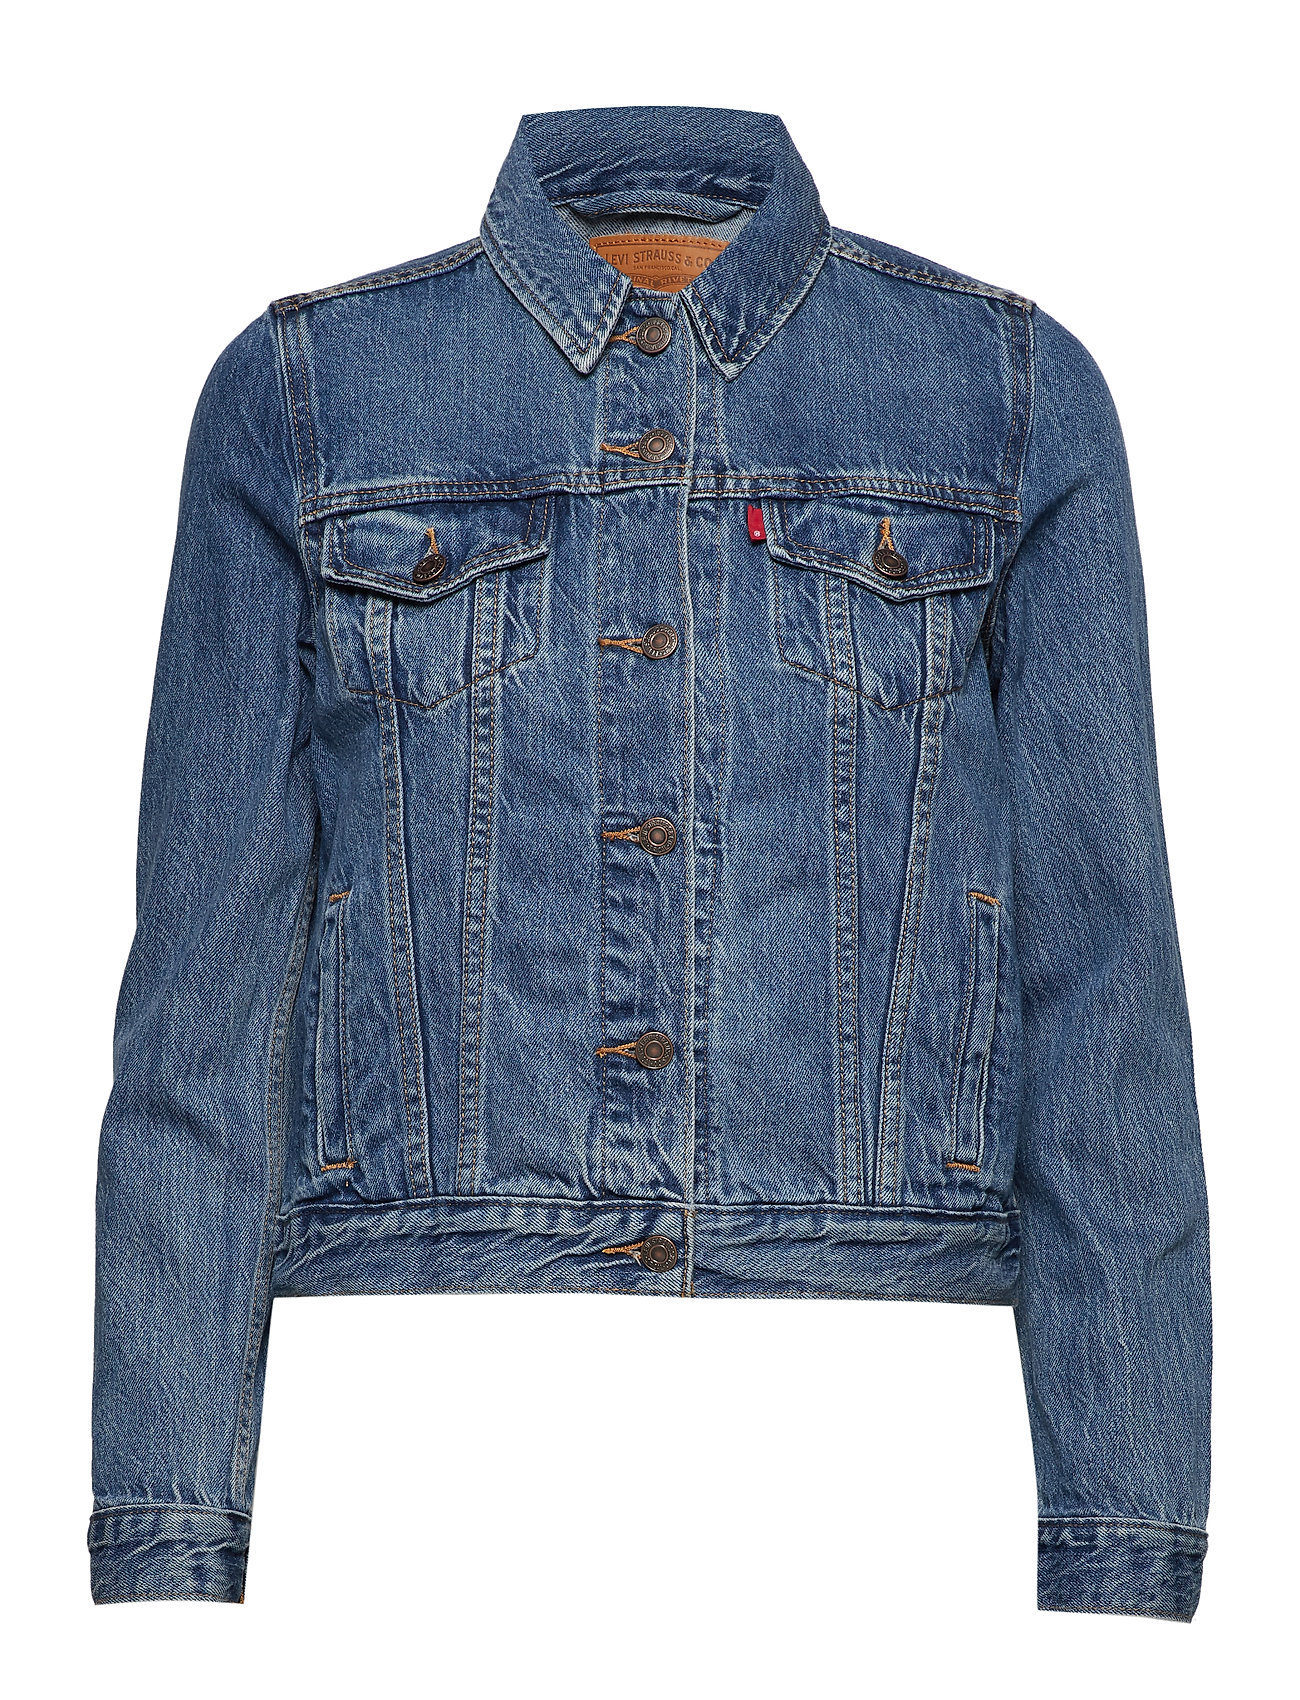 Exbf Sport Pc Trucker End Game Jakke Denimjakke Blå LEVI´S Women